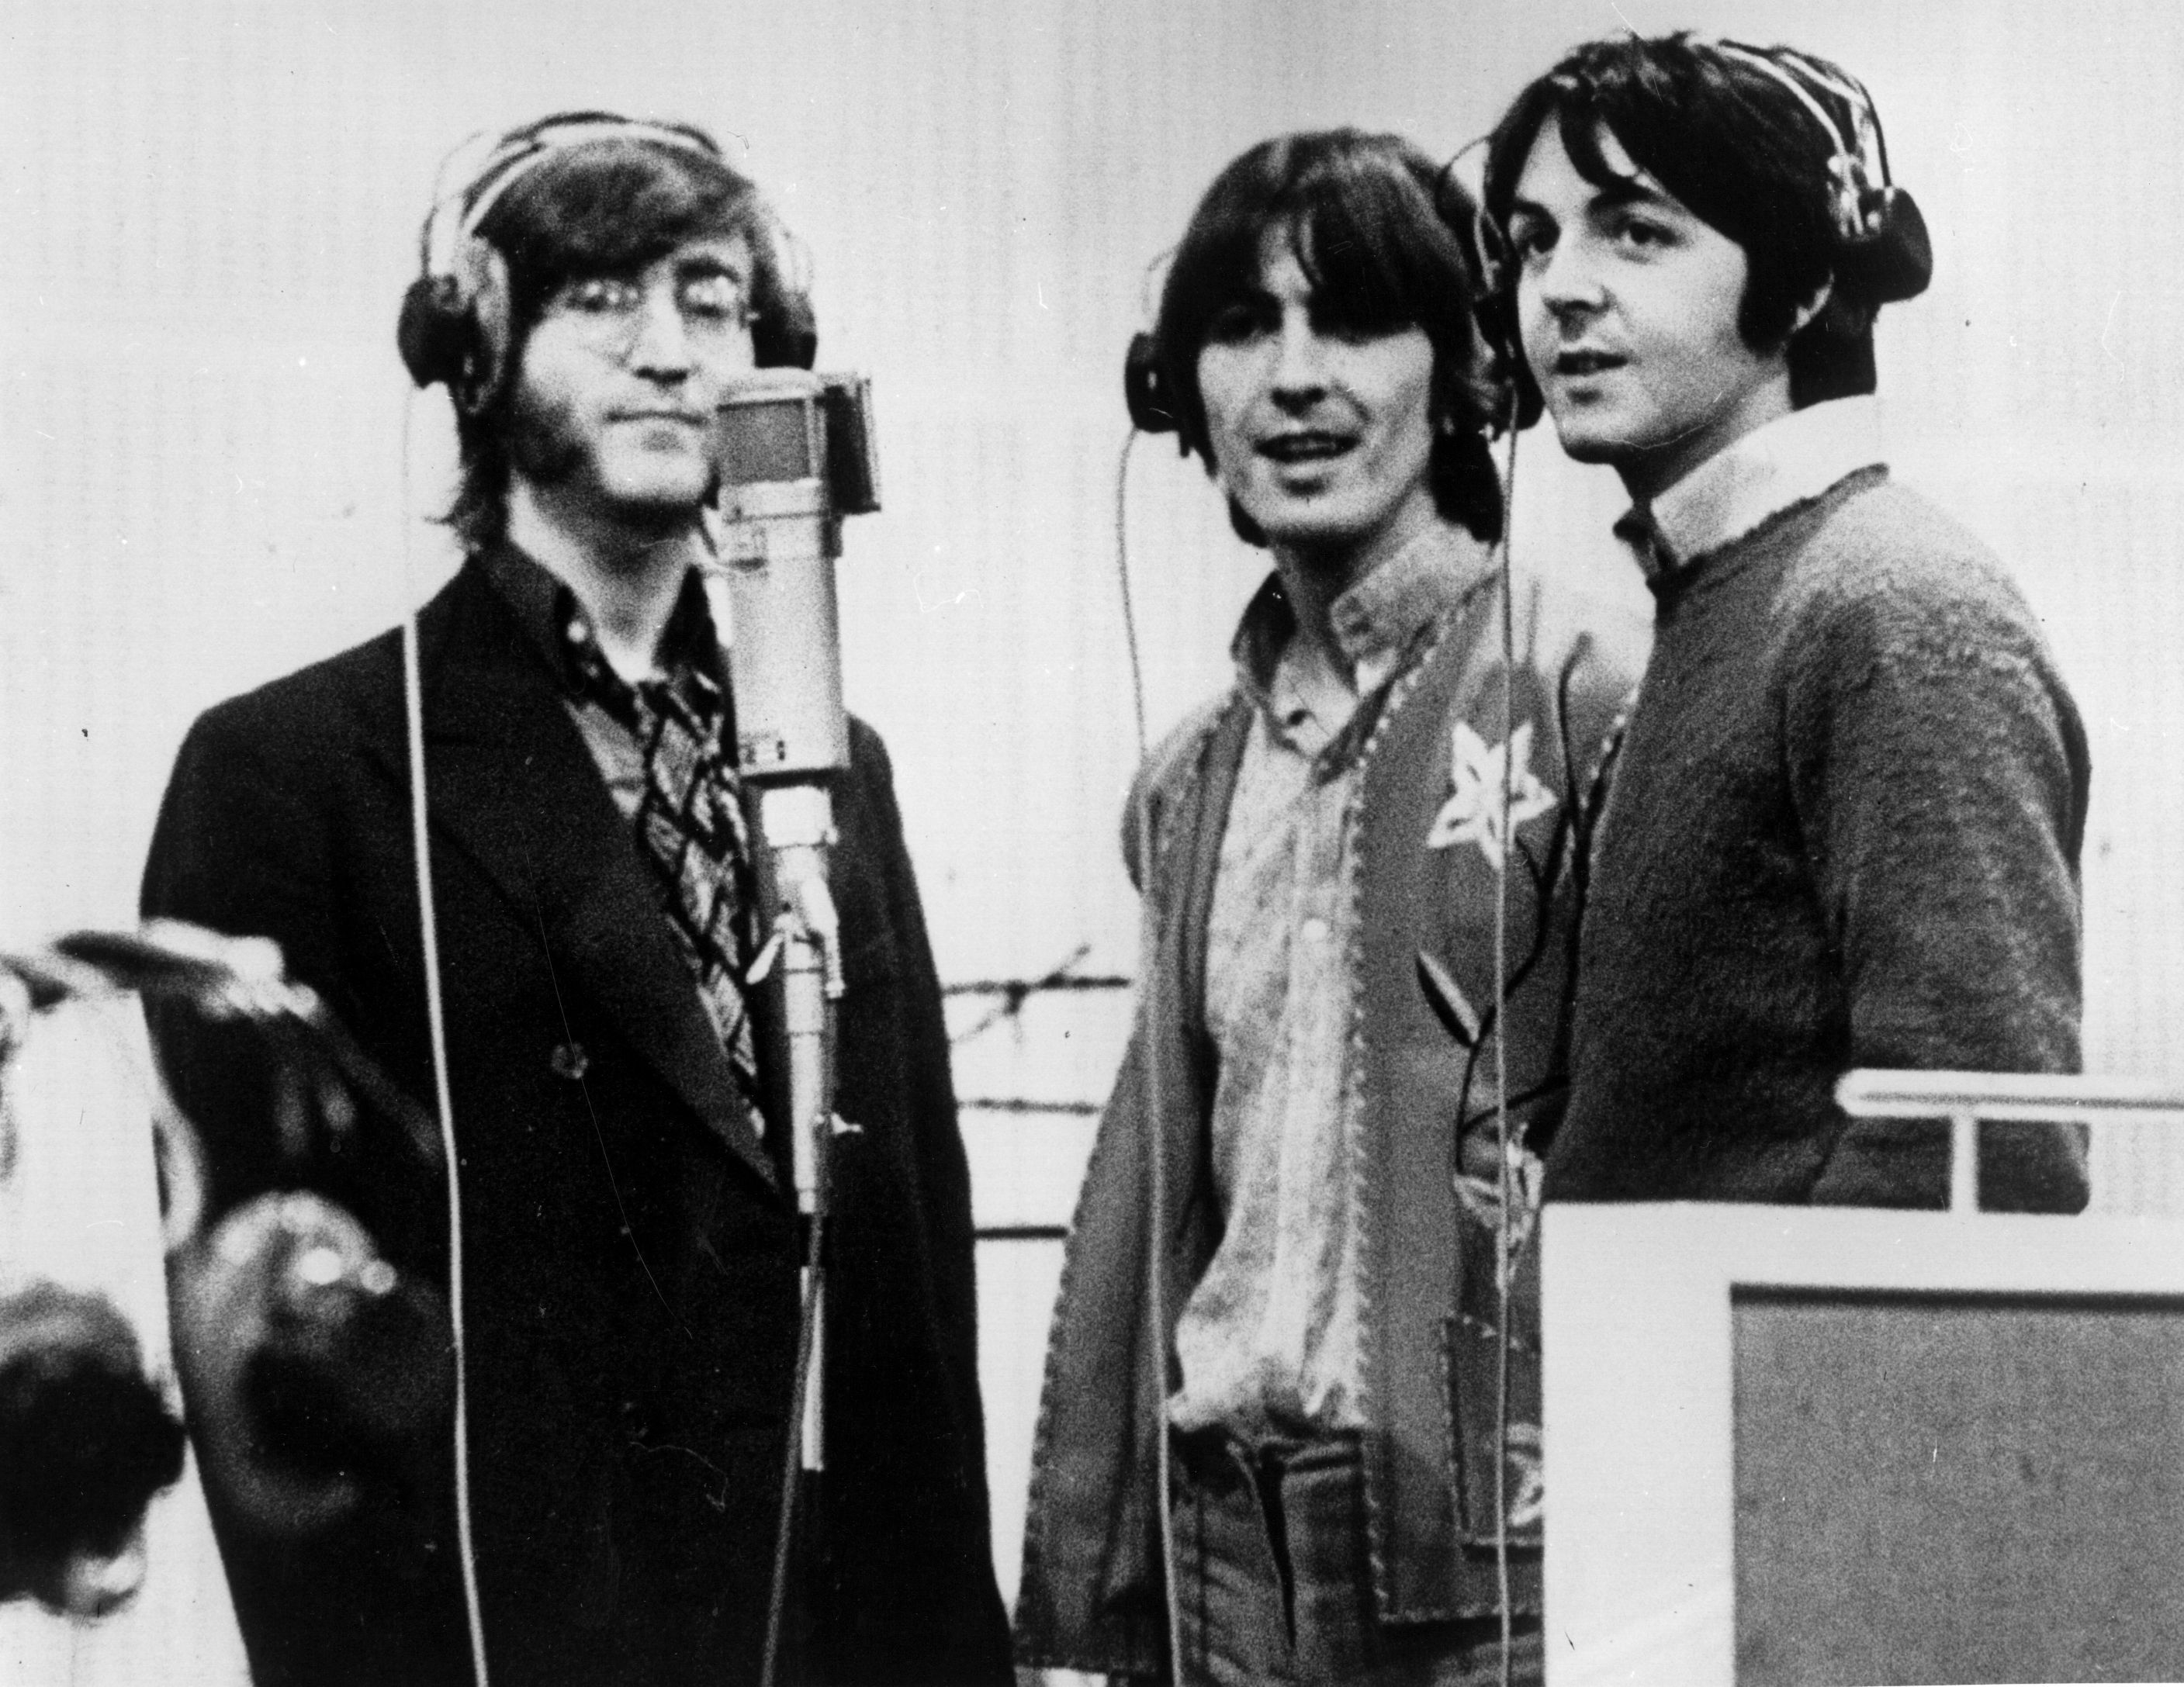 The Best Beatles Song Is a 23-Second Track That Almost Didn't Exist